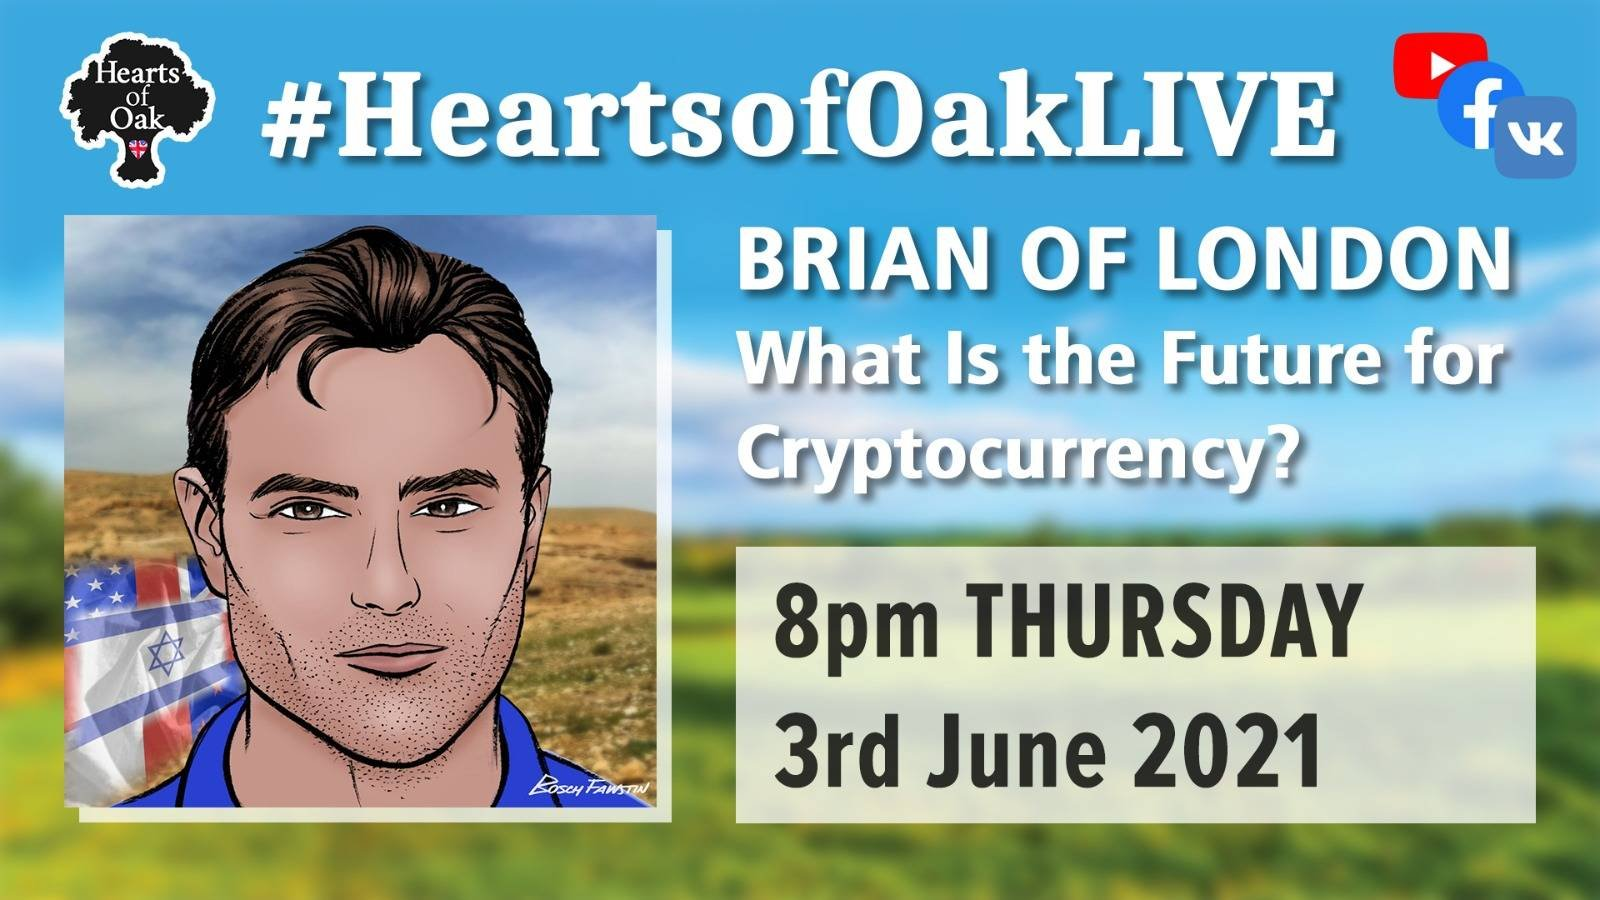 Brian of London: What is the Future for Cryptocurrency?